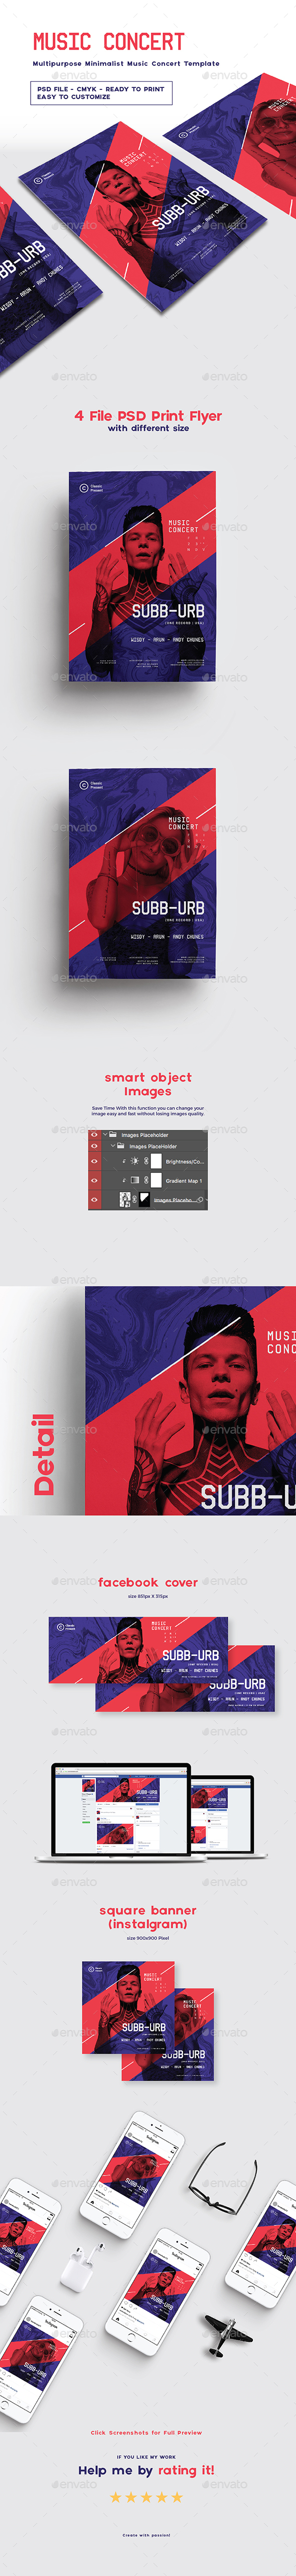 Multipurpose Minimalist Music Concert Template - Concerts Events